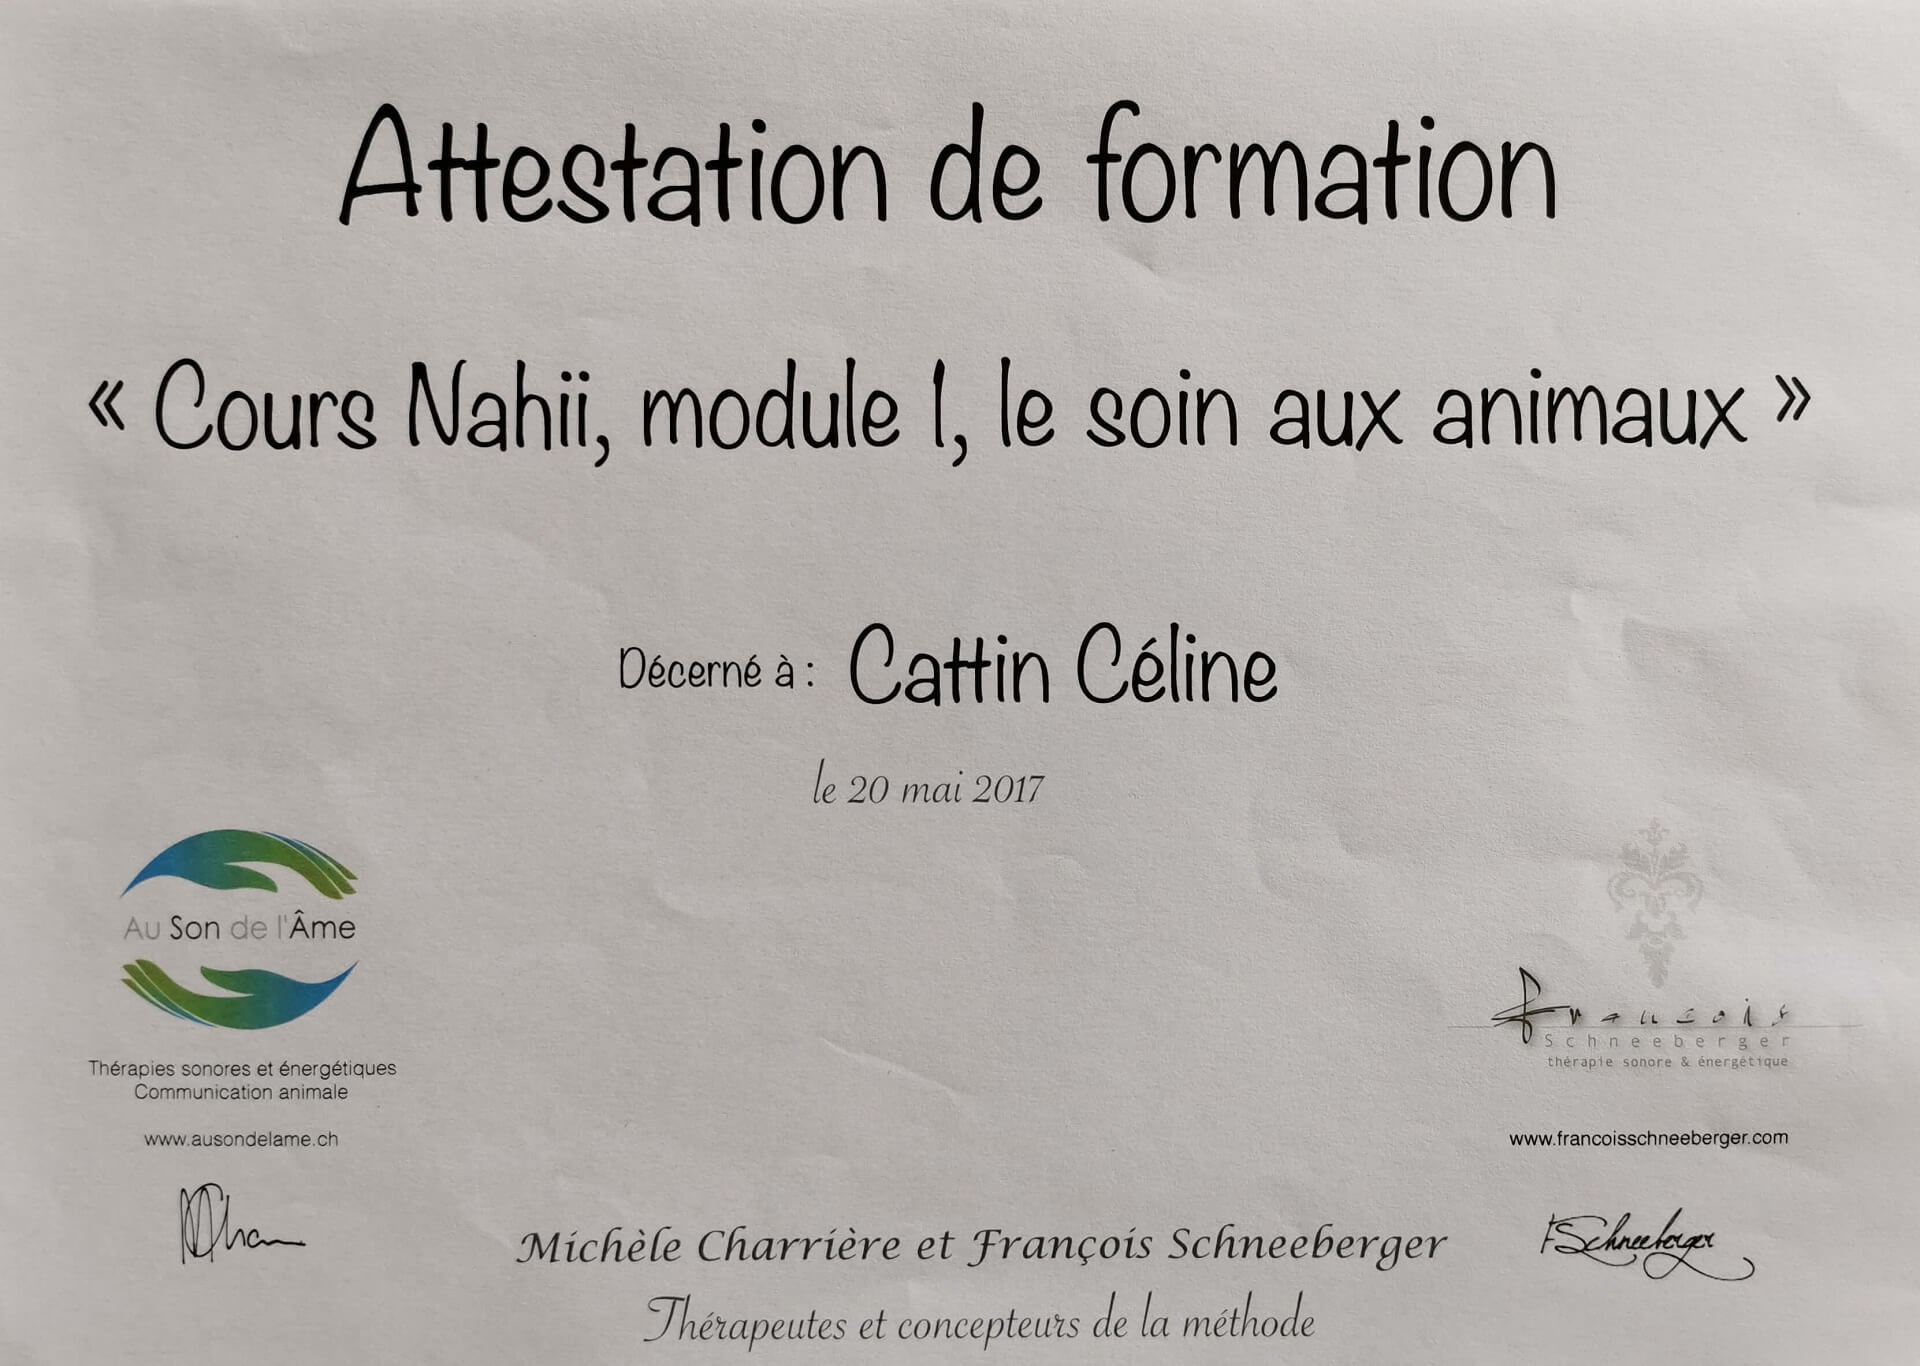 Cours nahii module 1 soin animaux